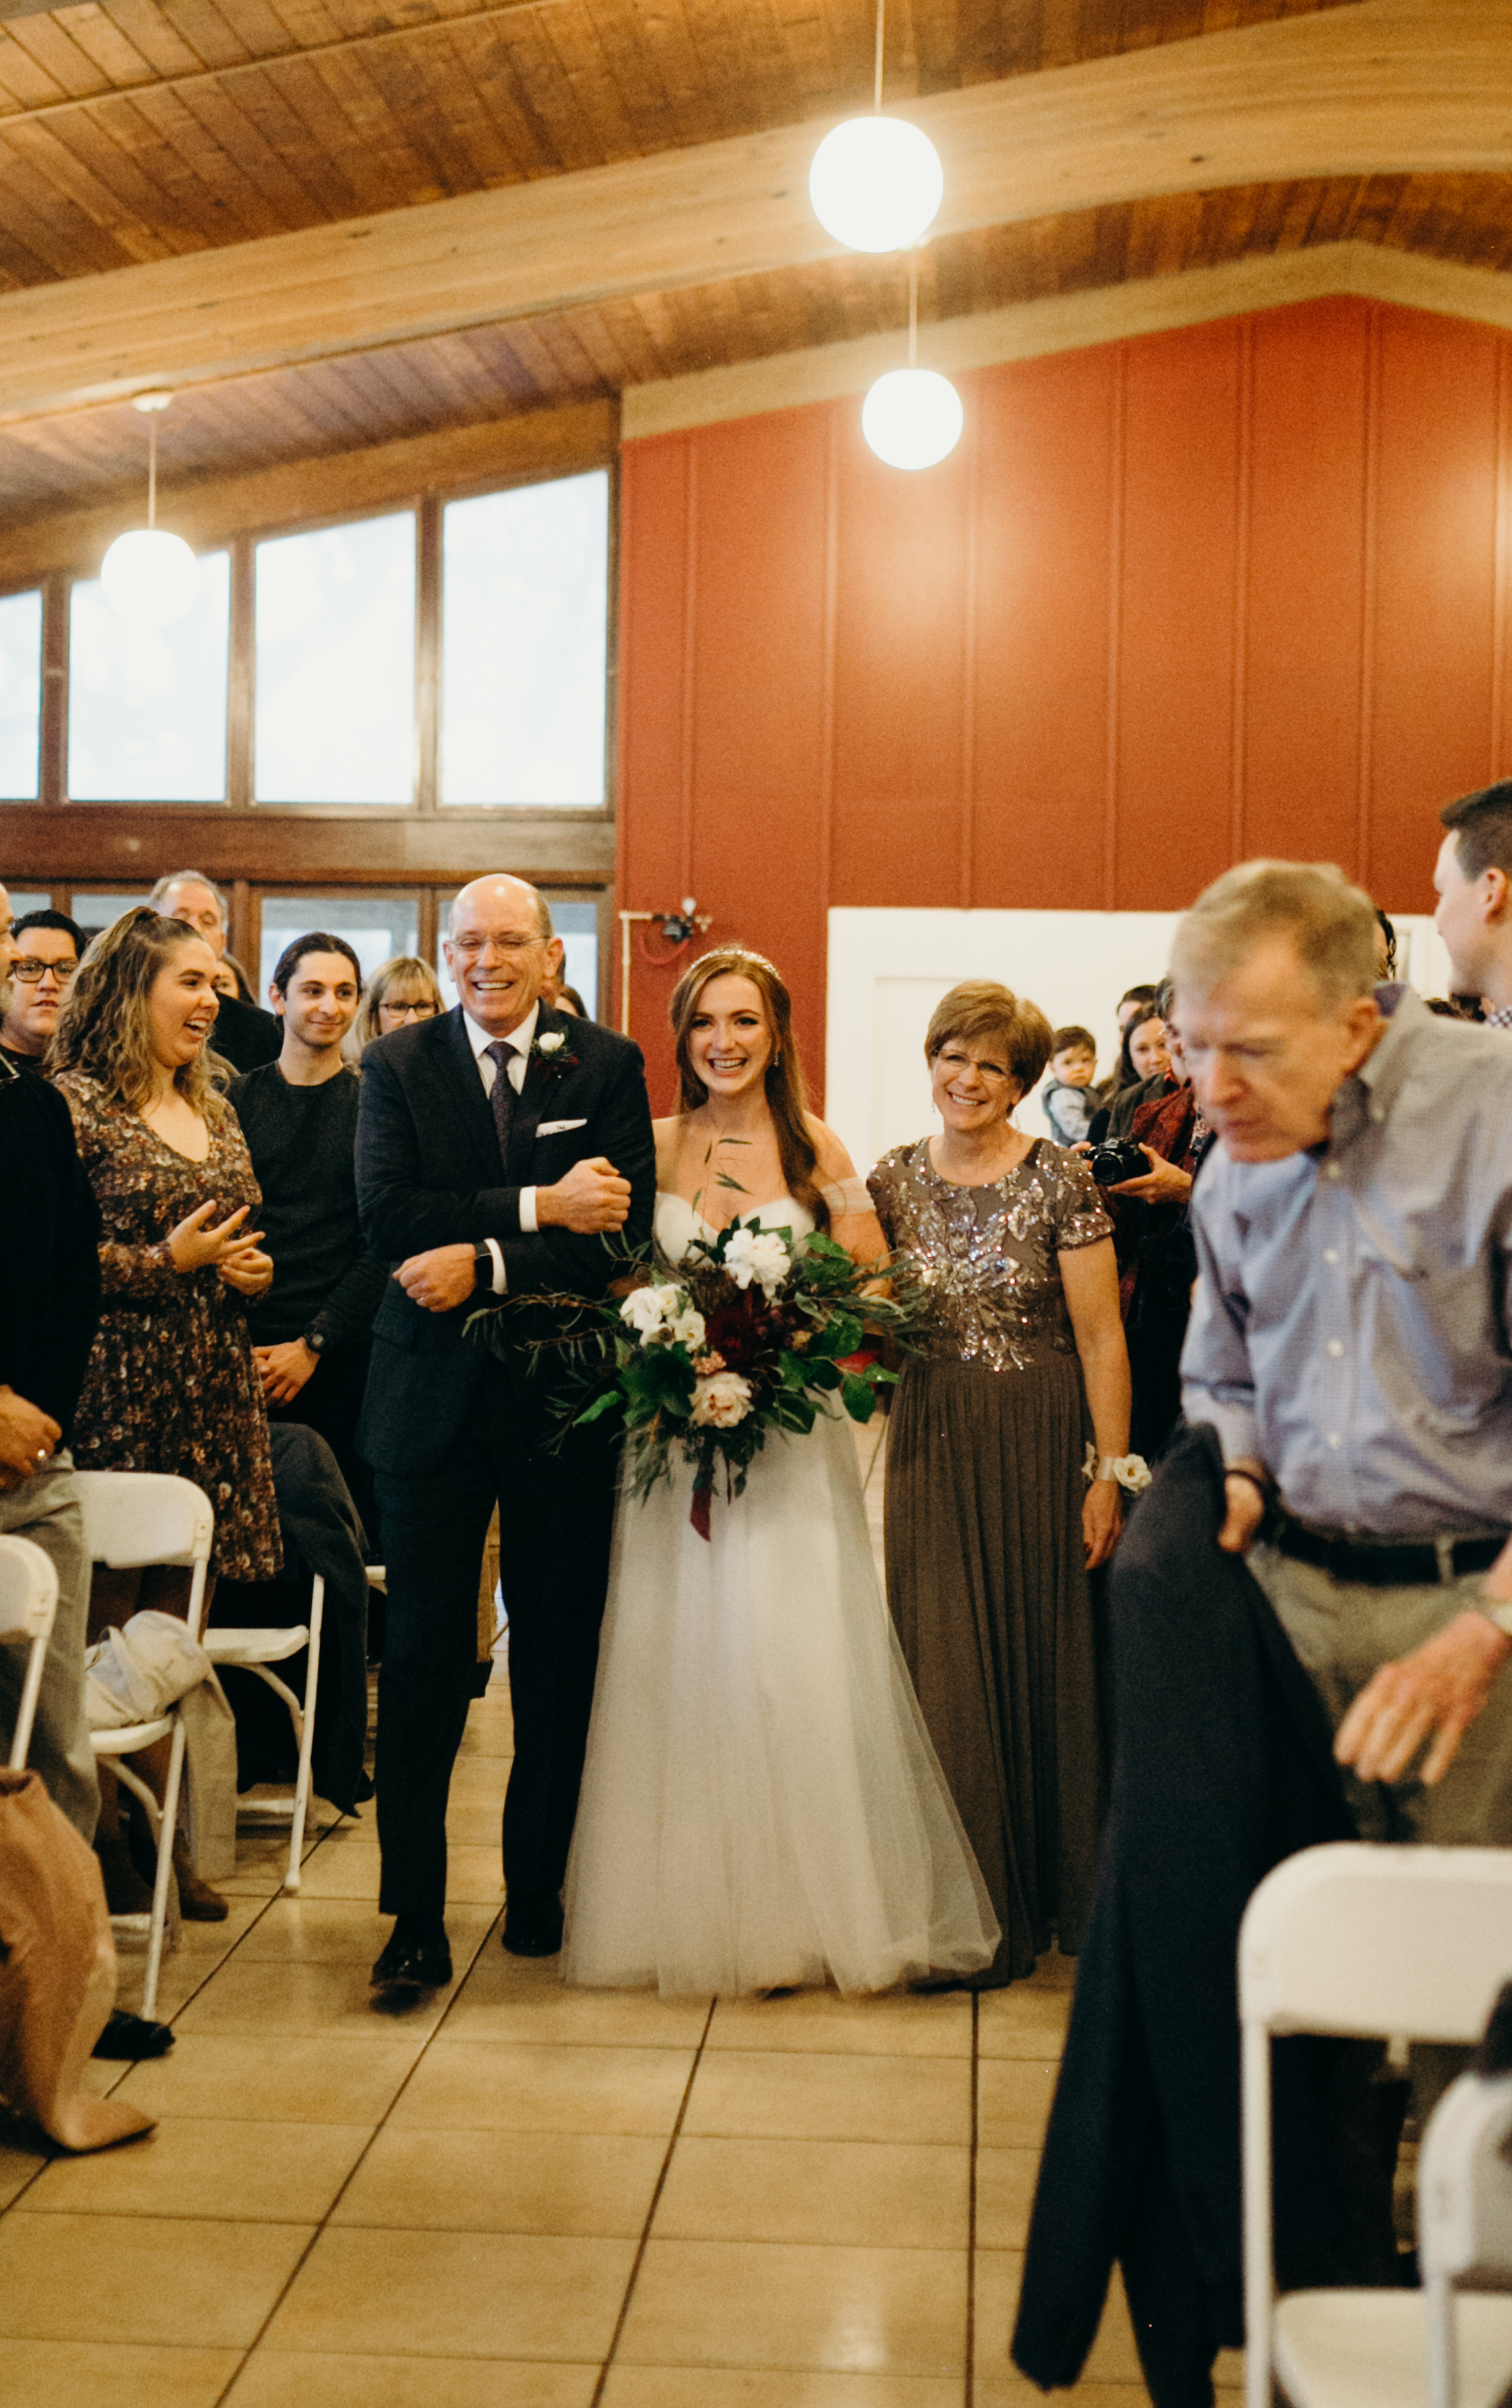 ash and grant wedding 2-16.jpg